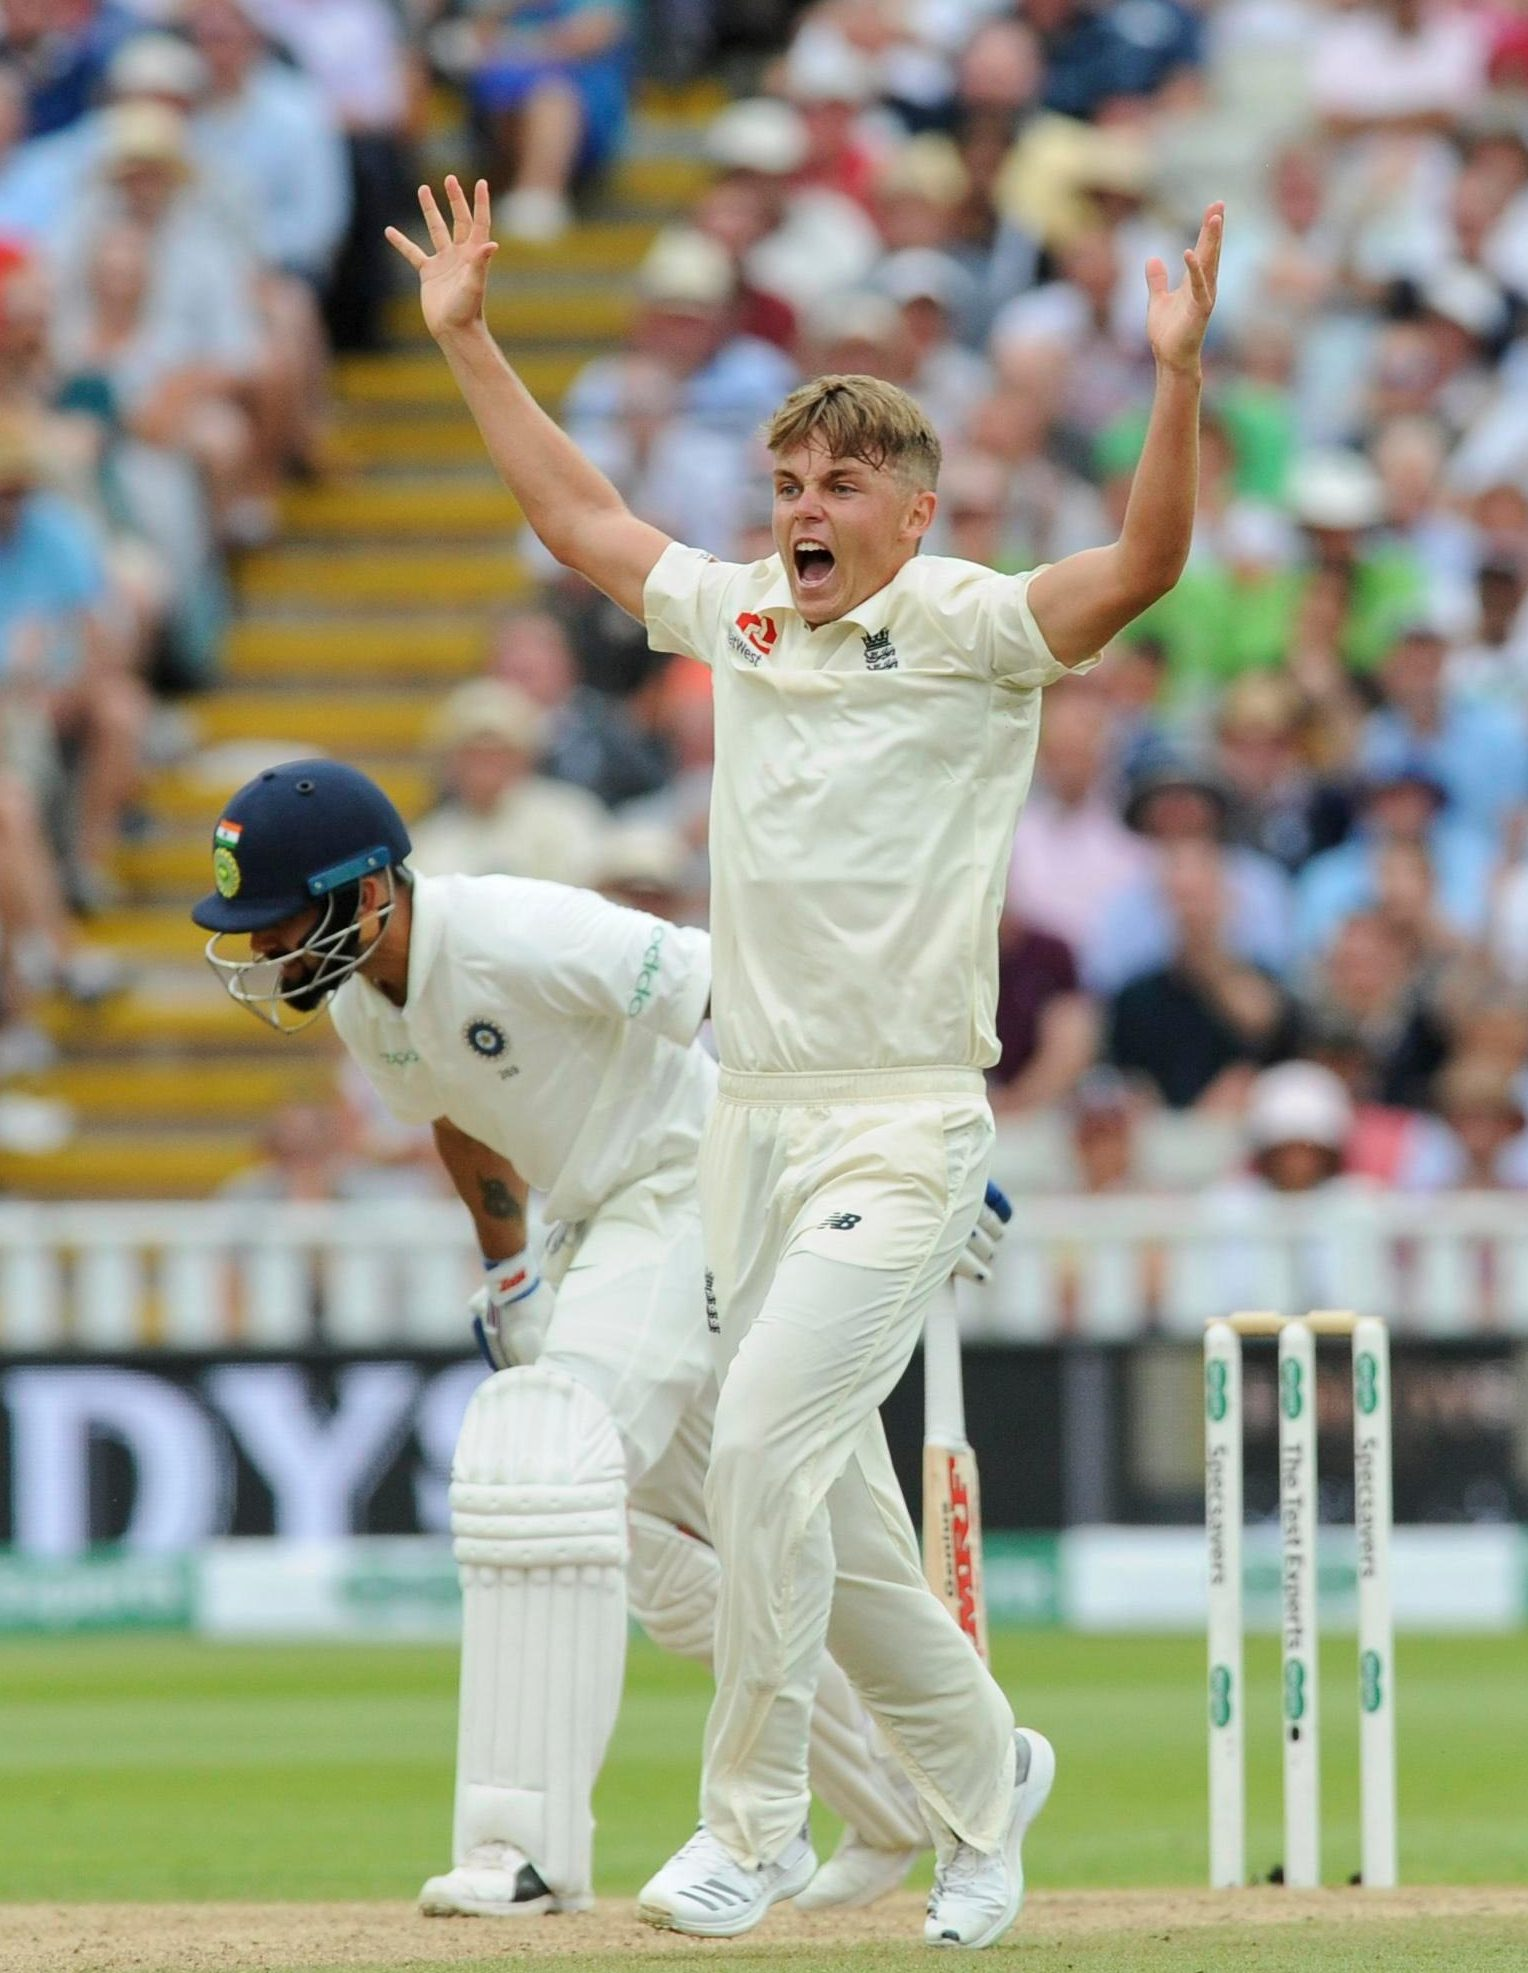 Sam Curran shone with bat and ball in the First Test for England